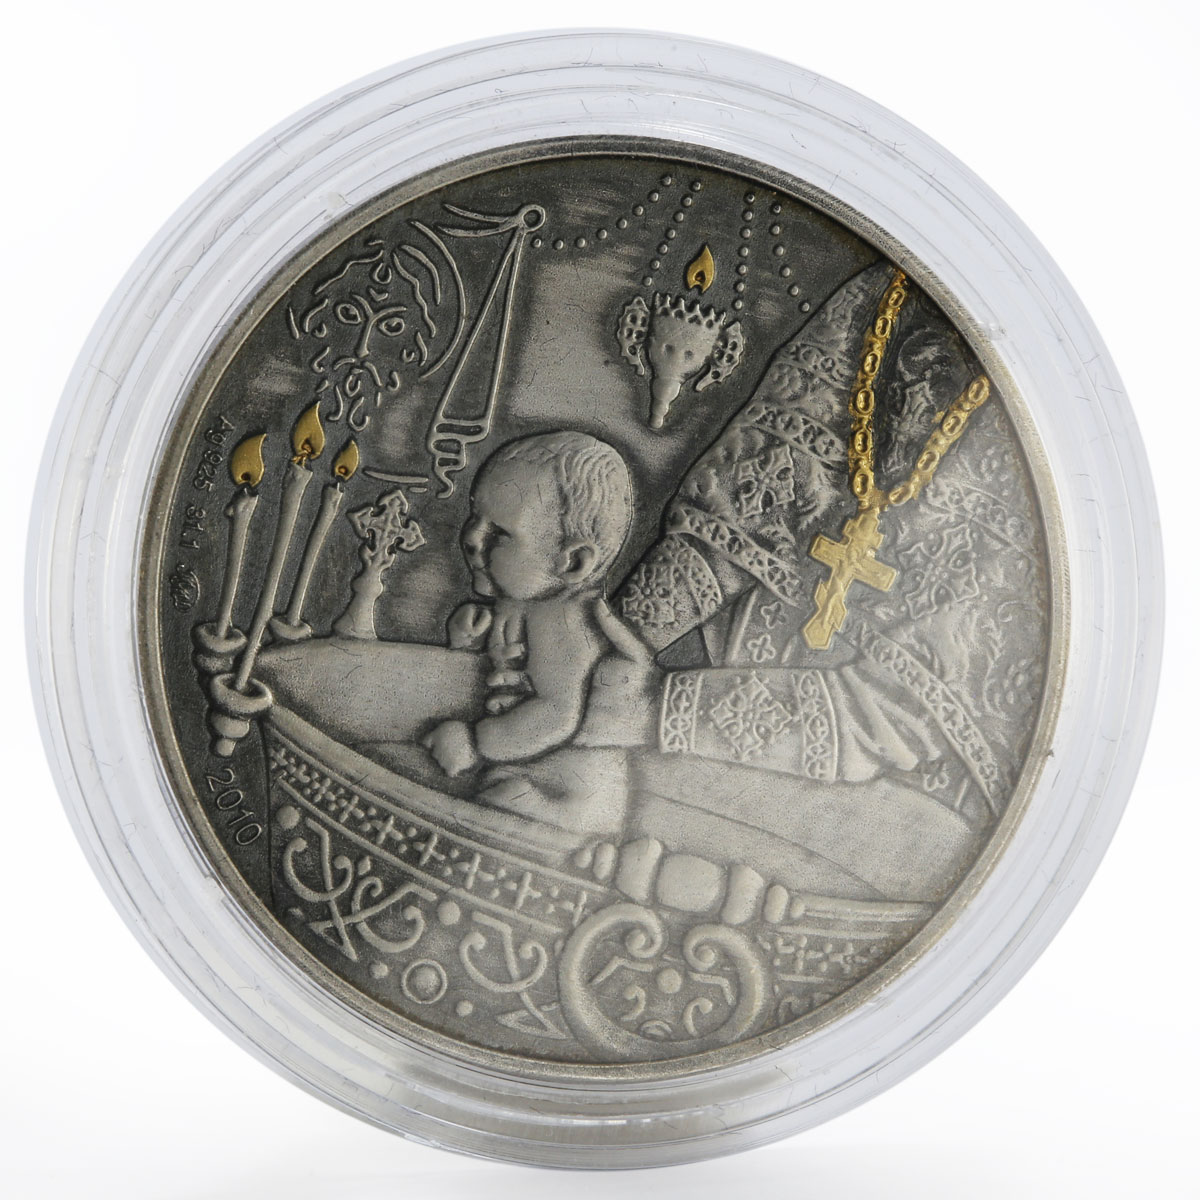 Congo 1000 francs Baptizing of Child gilded silver coin 2010